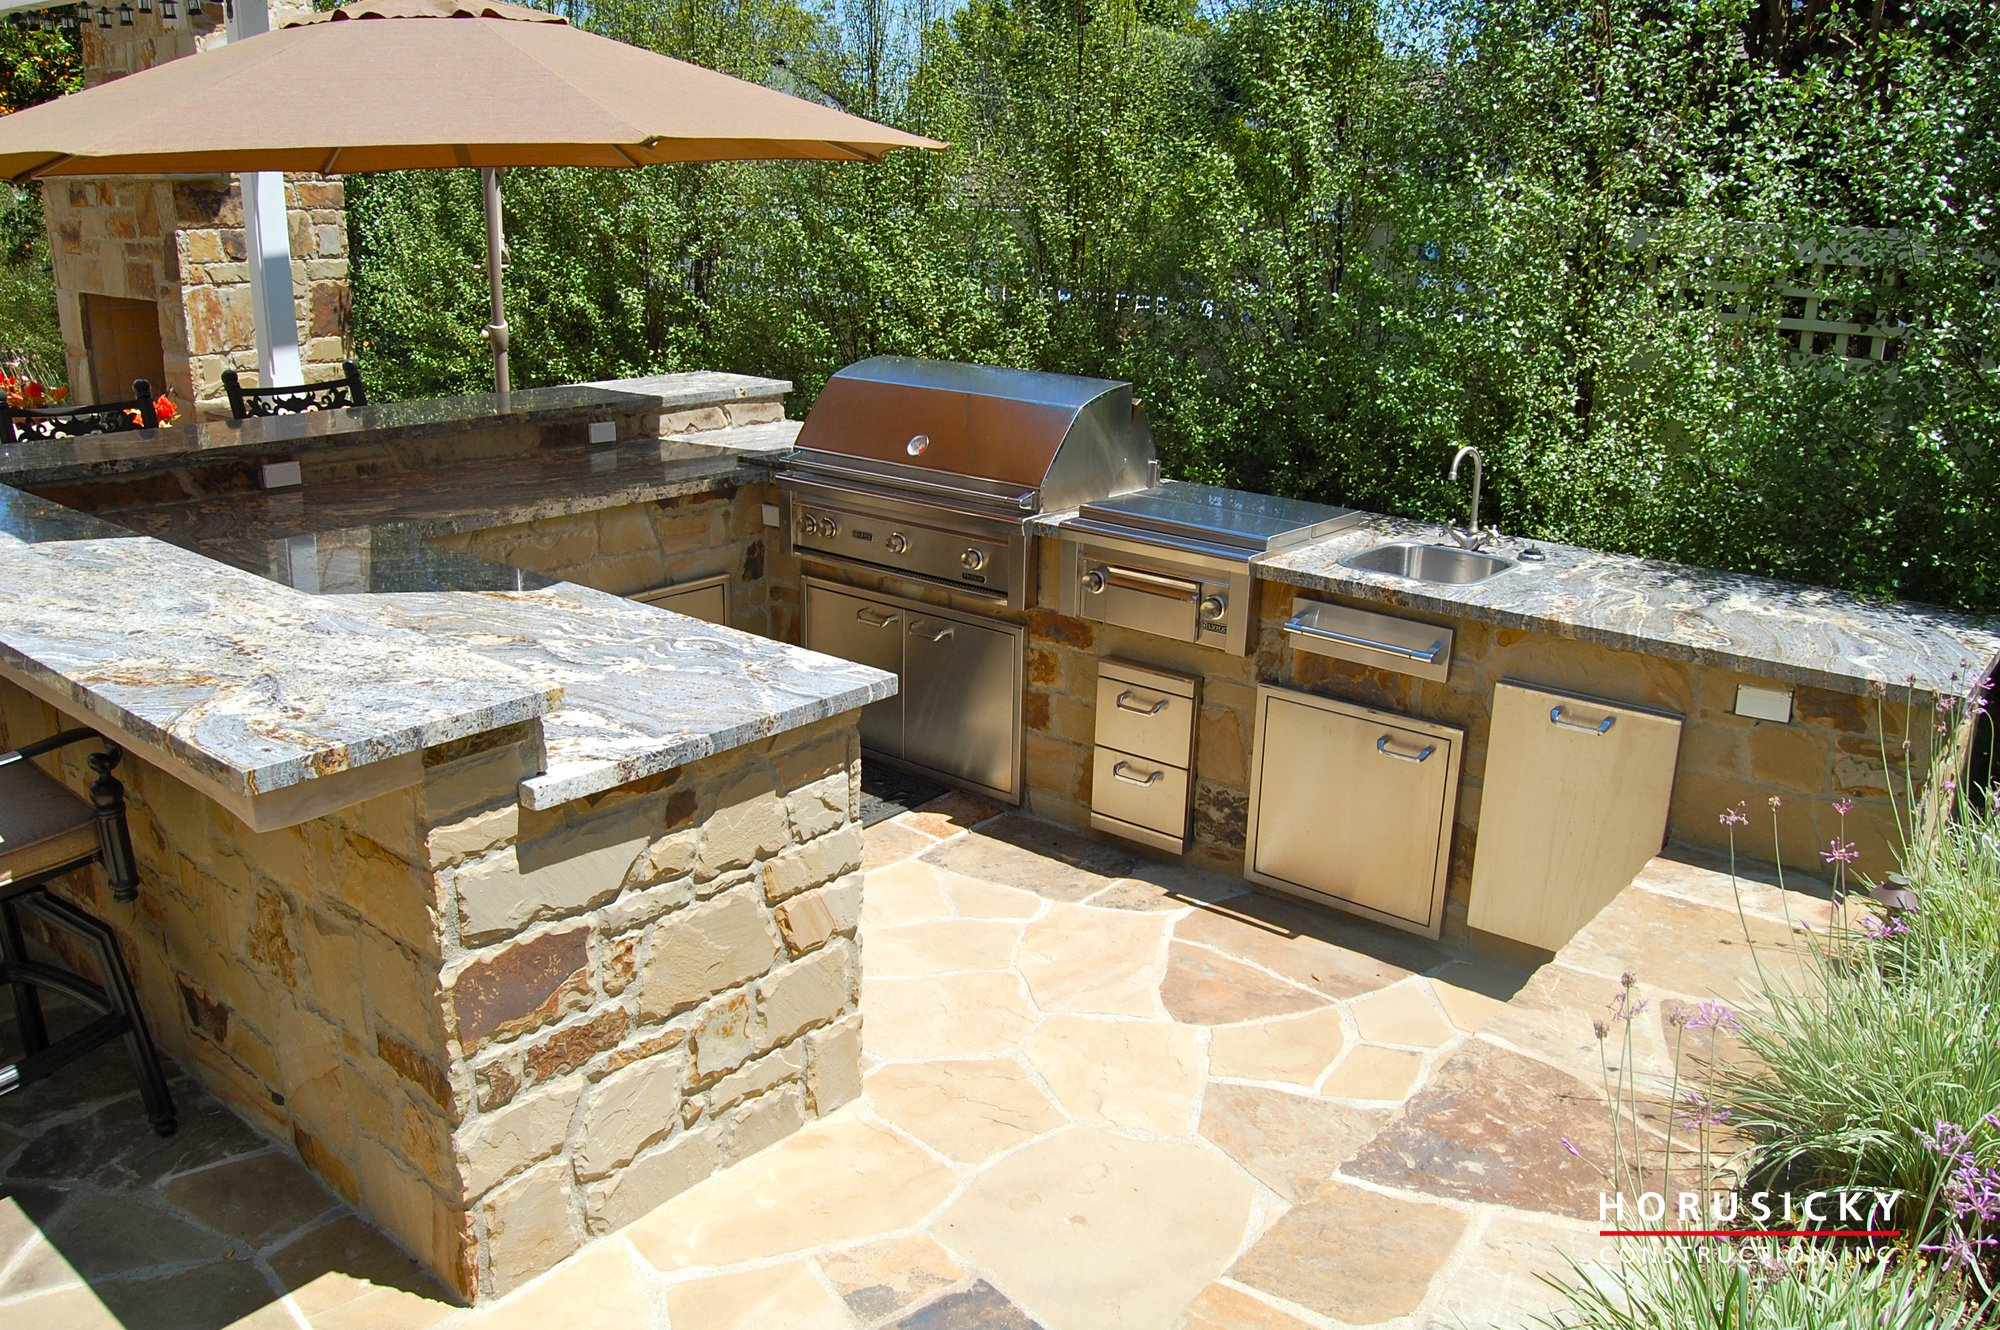 Outdoor Grill Outdoor Kitchens And Bbq Grills Horusicky Construction